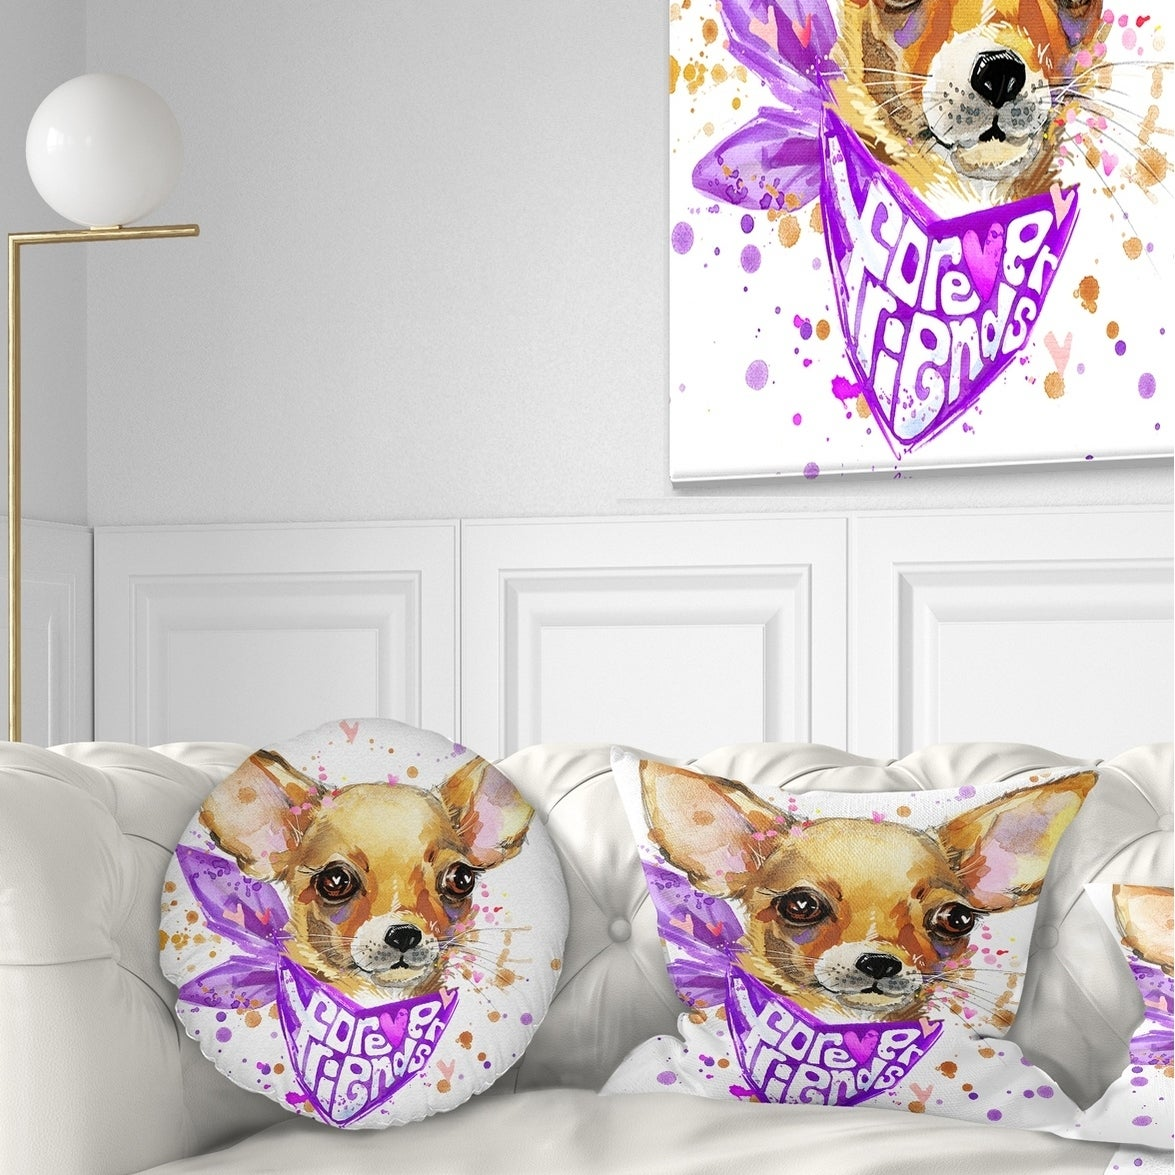 Shop For Designart Cute Puppy Dog With Neck Shawl Contemporary Animal Throw Pillow Get Free Shipping On Everything At Overstock Your Online Home Decor Outlet Store Get 5 In Rewards With Club O 20950746